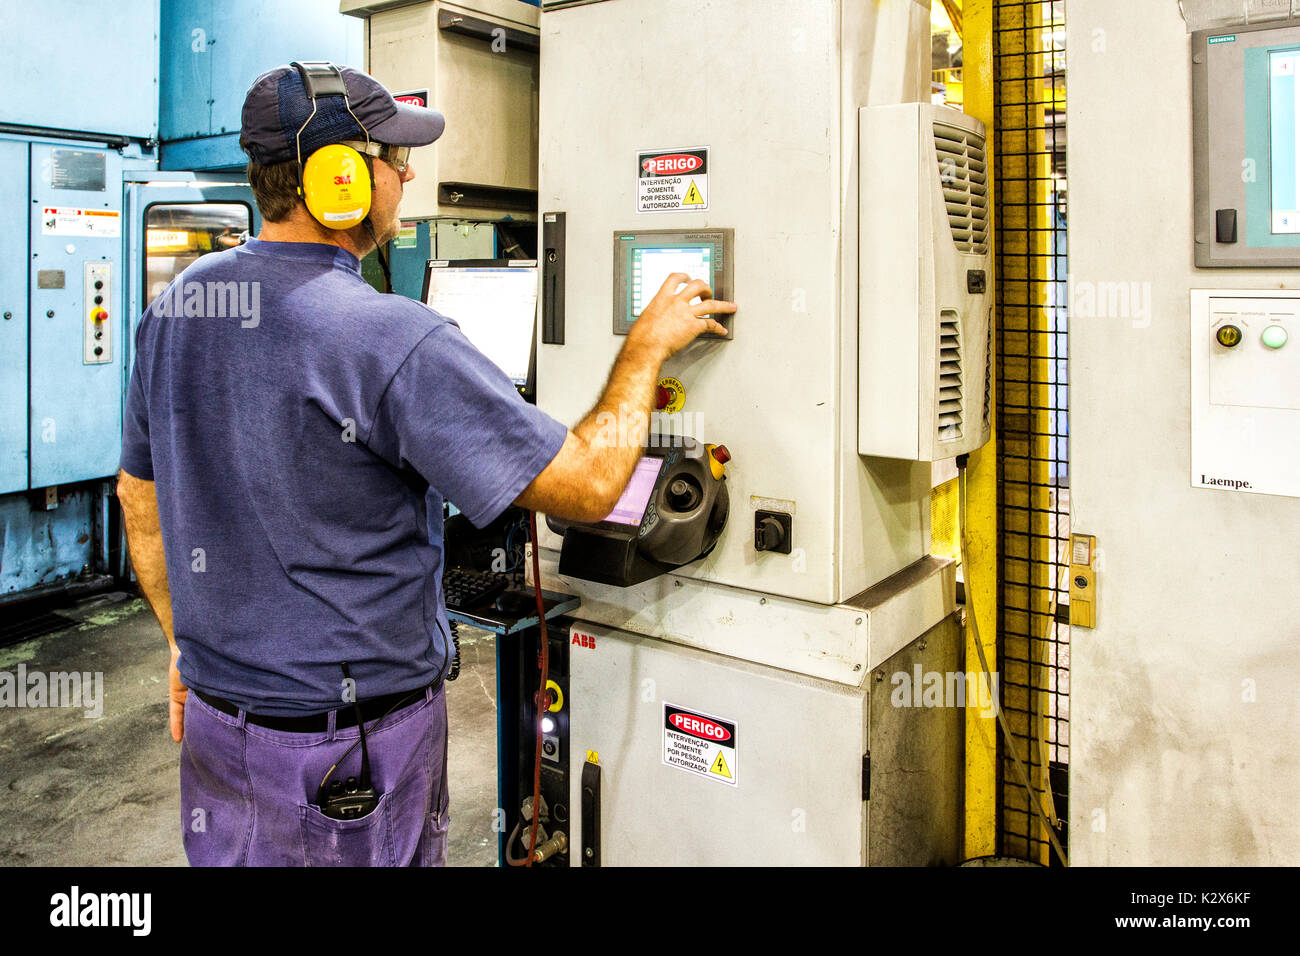 Bluecollar worker operating an equipment. Guaramirim, Santa Catarina, Brazil. Stock Photo